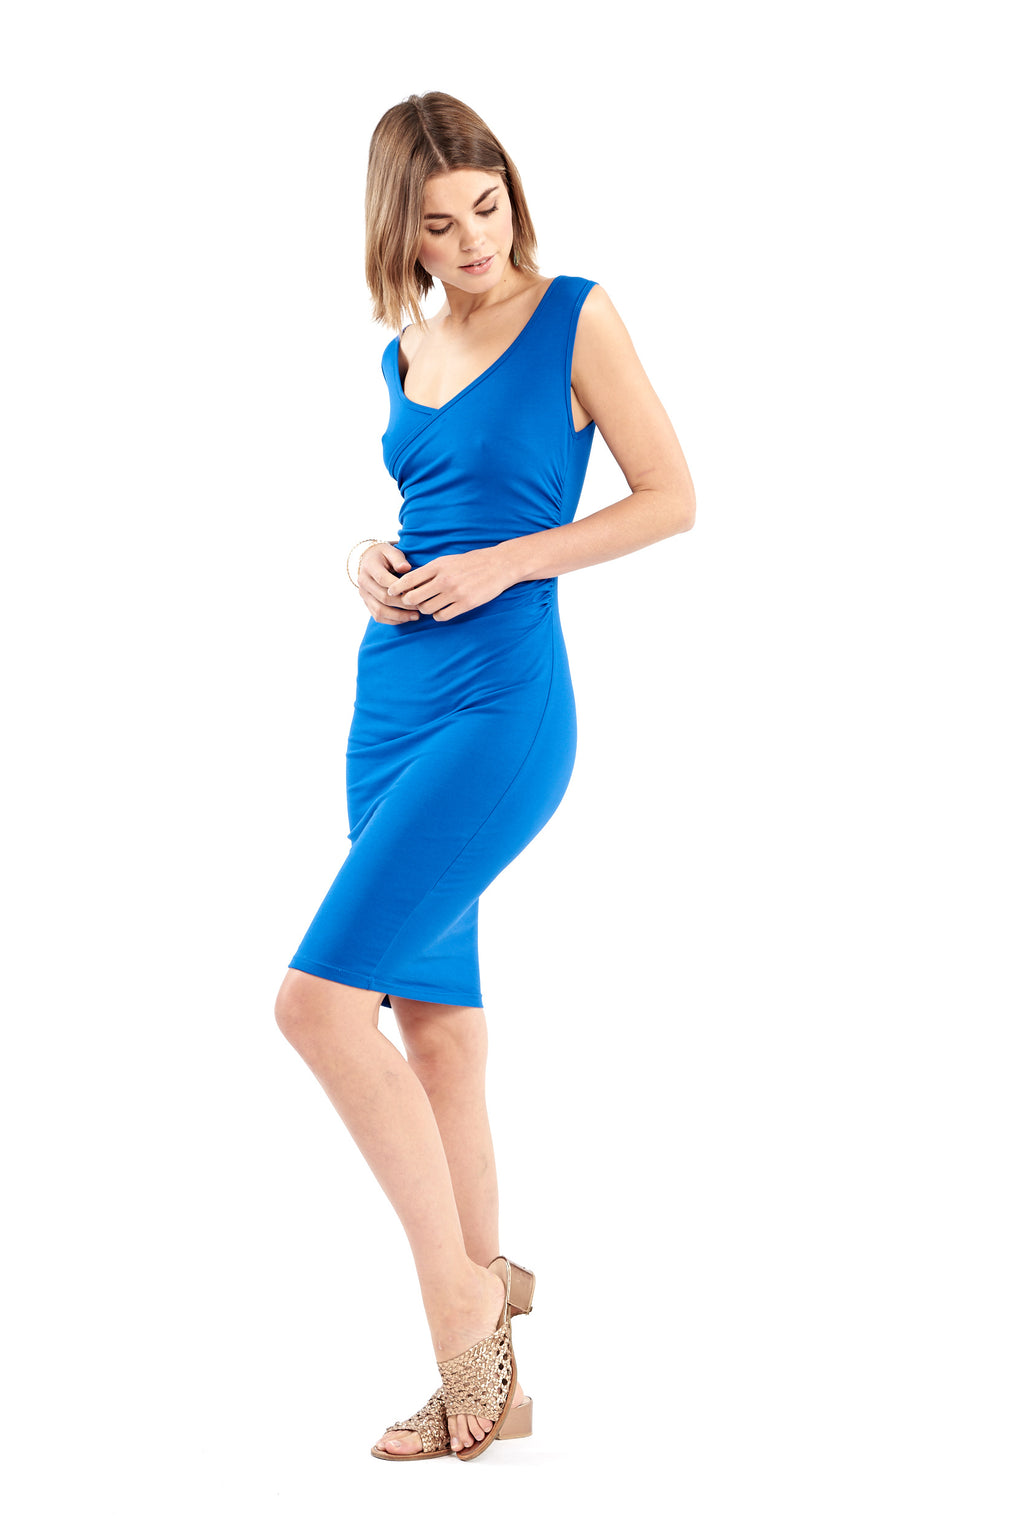 Organic Bamboo Crossover Dress Royal Blue - MUDRA